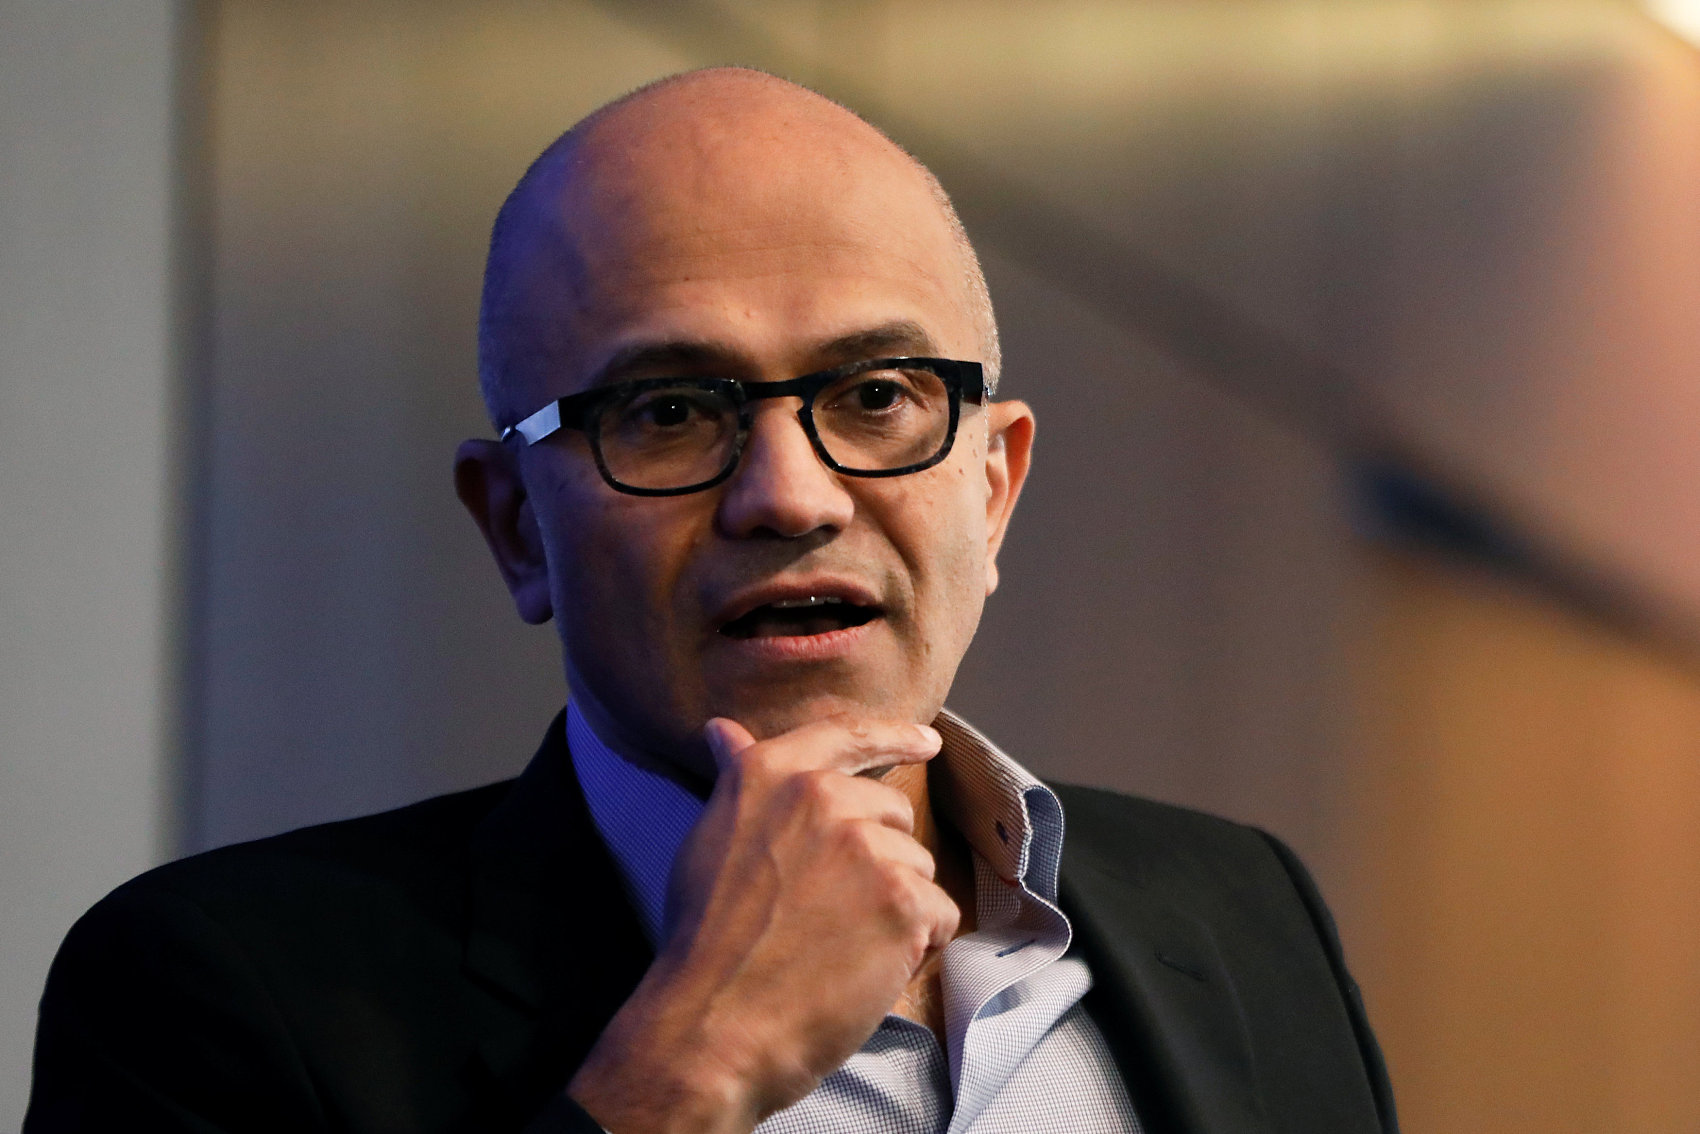 China needs to create its own world-class technology: Microsoft CEO